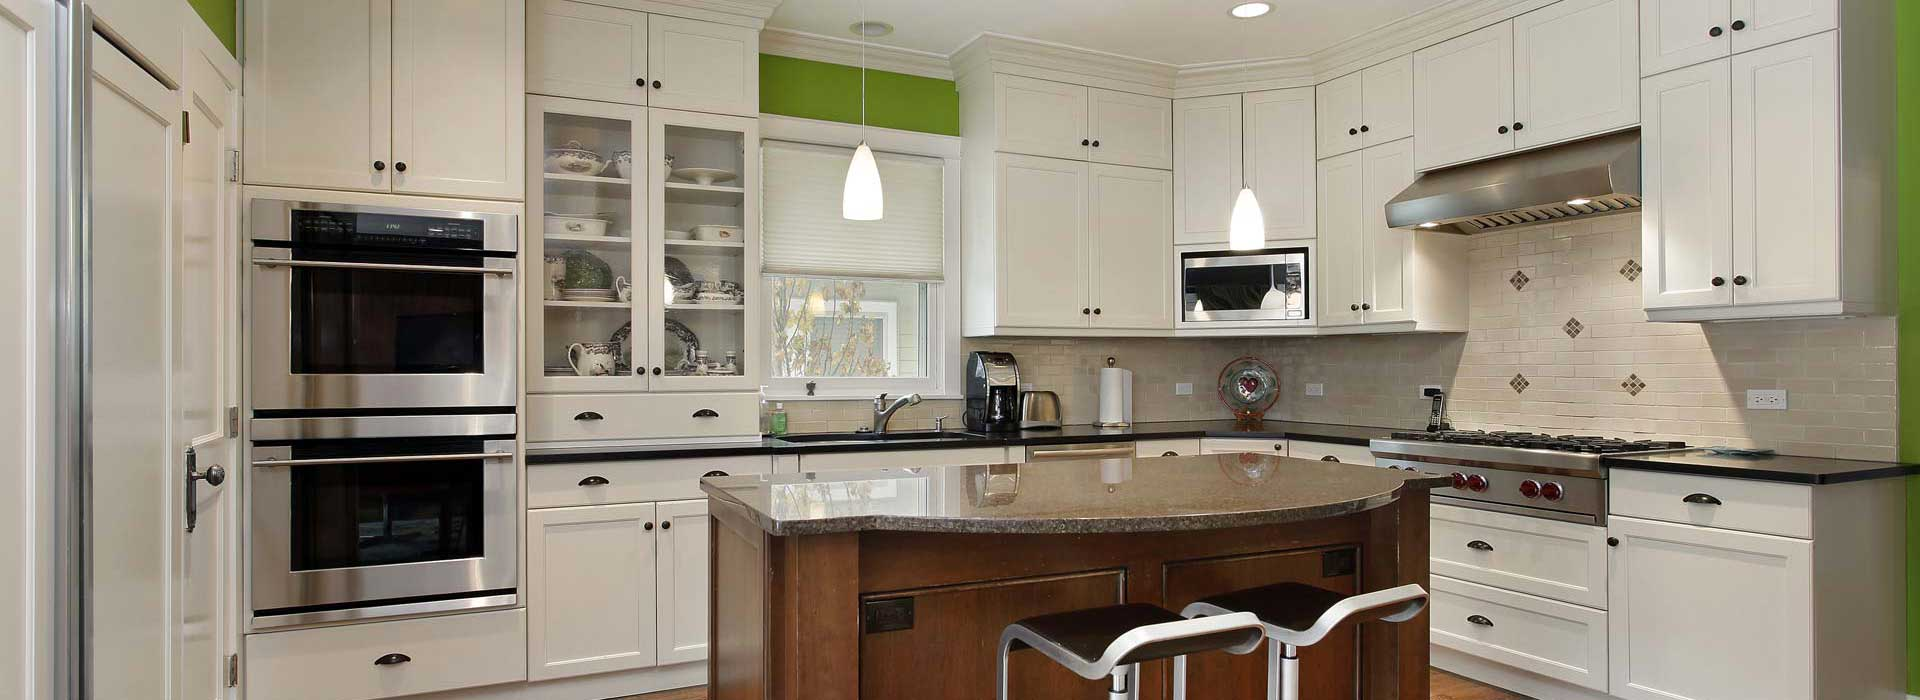 Kitchen Cabinet Refacing New Look Kitchen Refacing Ny